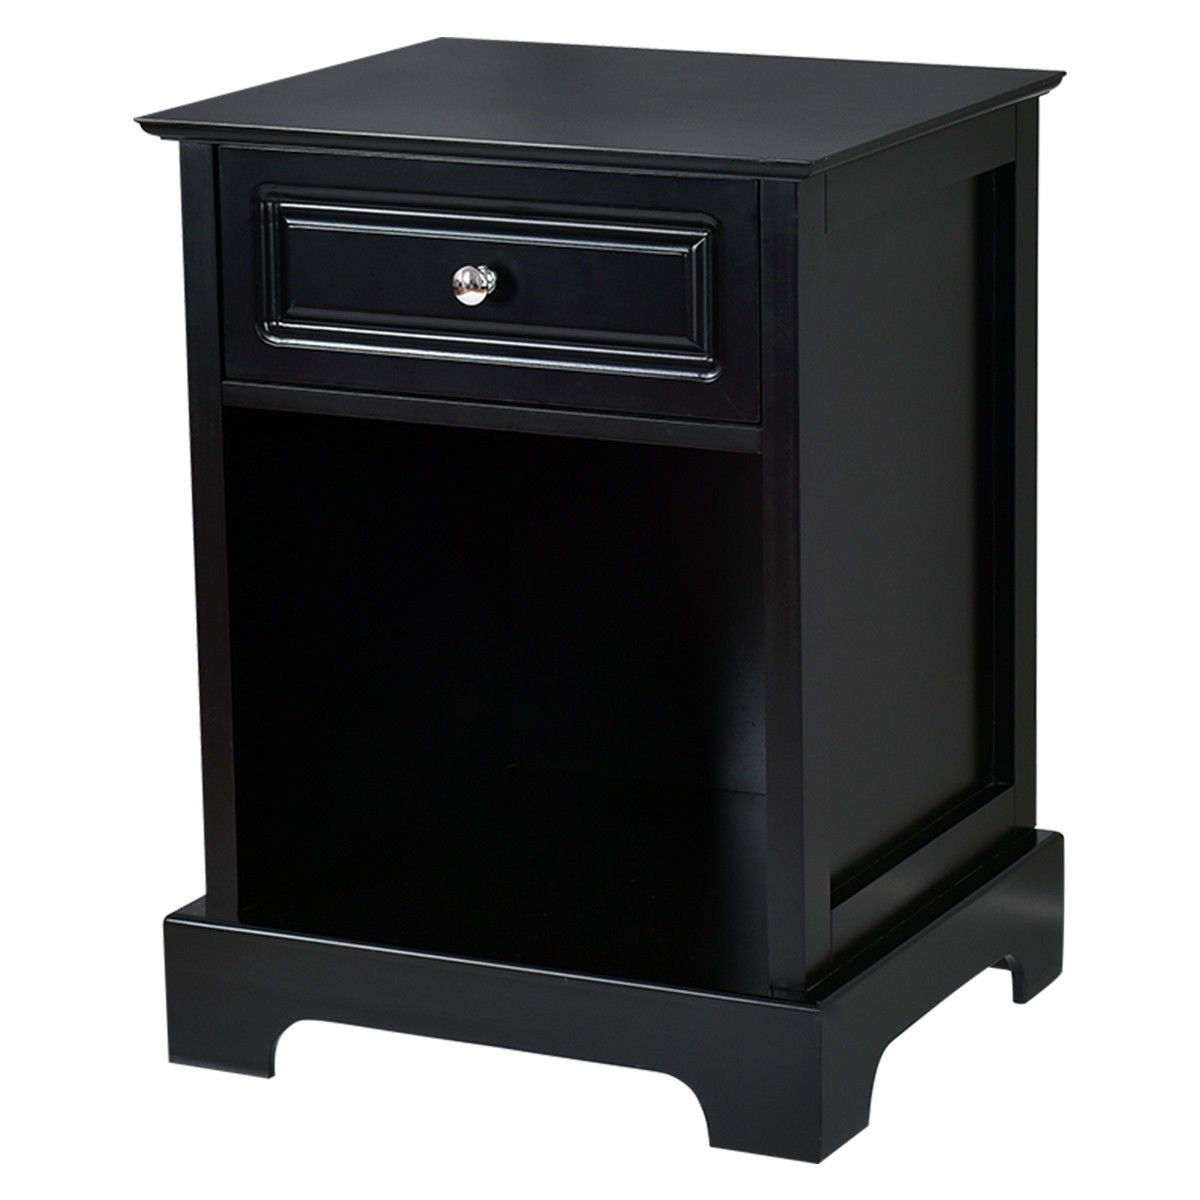 gymax pcs night stand end accent table drawer chest sofa side bedside storage black with free shipping today grey round coffee narrow dining for small spaces white pedestal silver